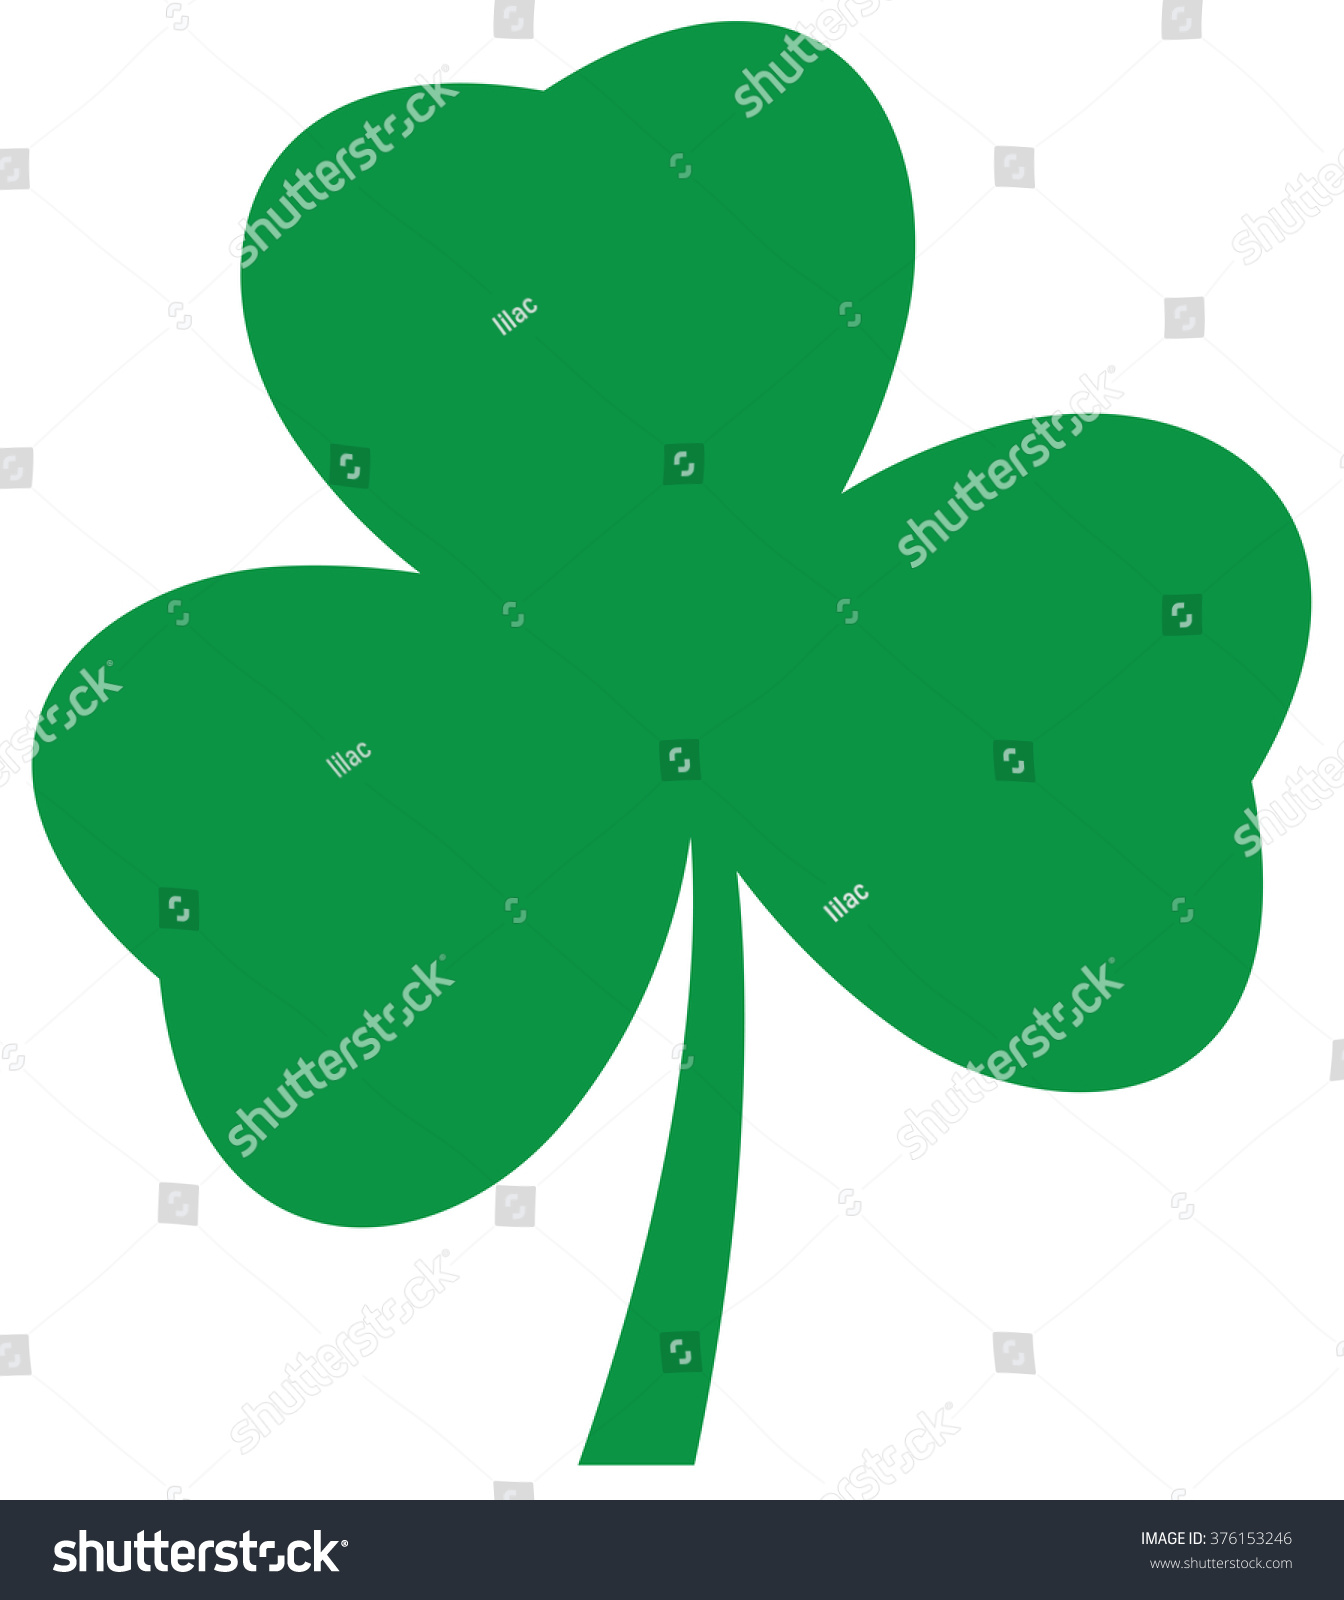 vector illustration shamrock icon st patrick stock vector 2018 rh shutterstock com shamrock vector file celtic shamrock vector